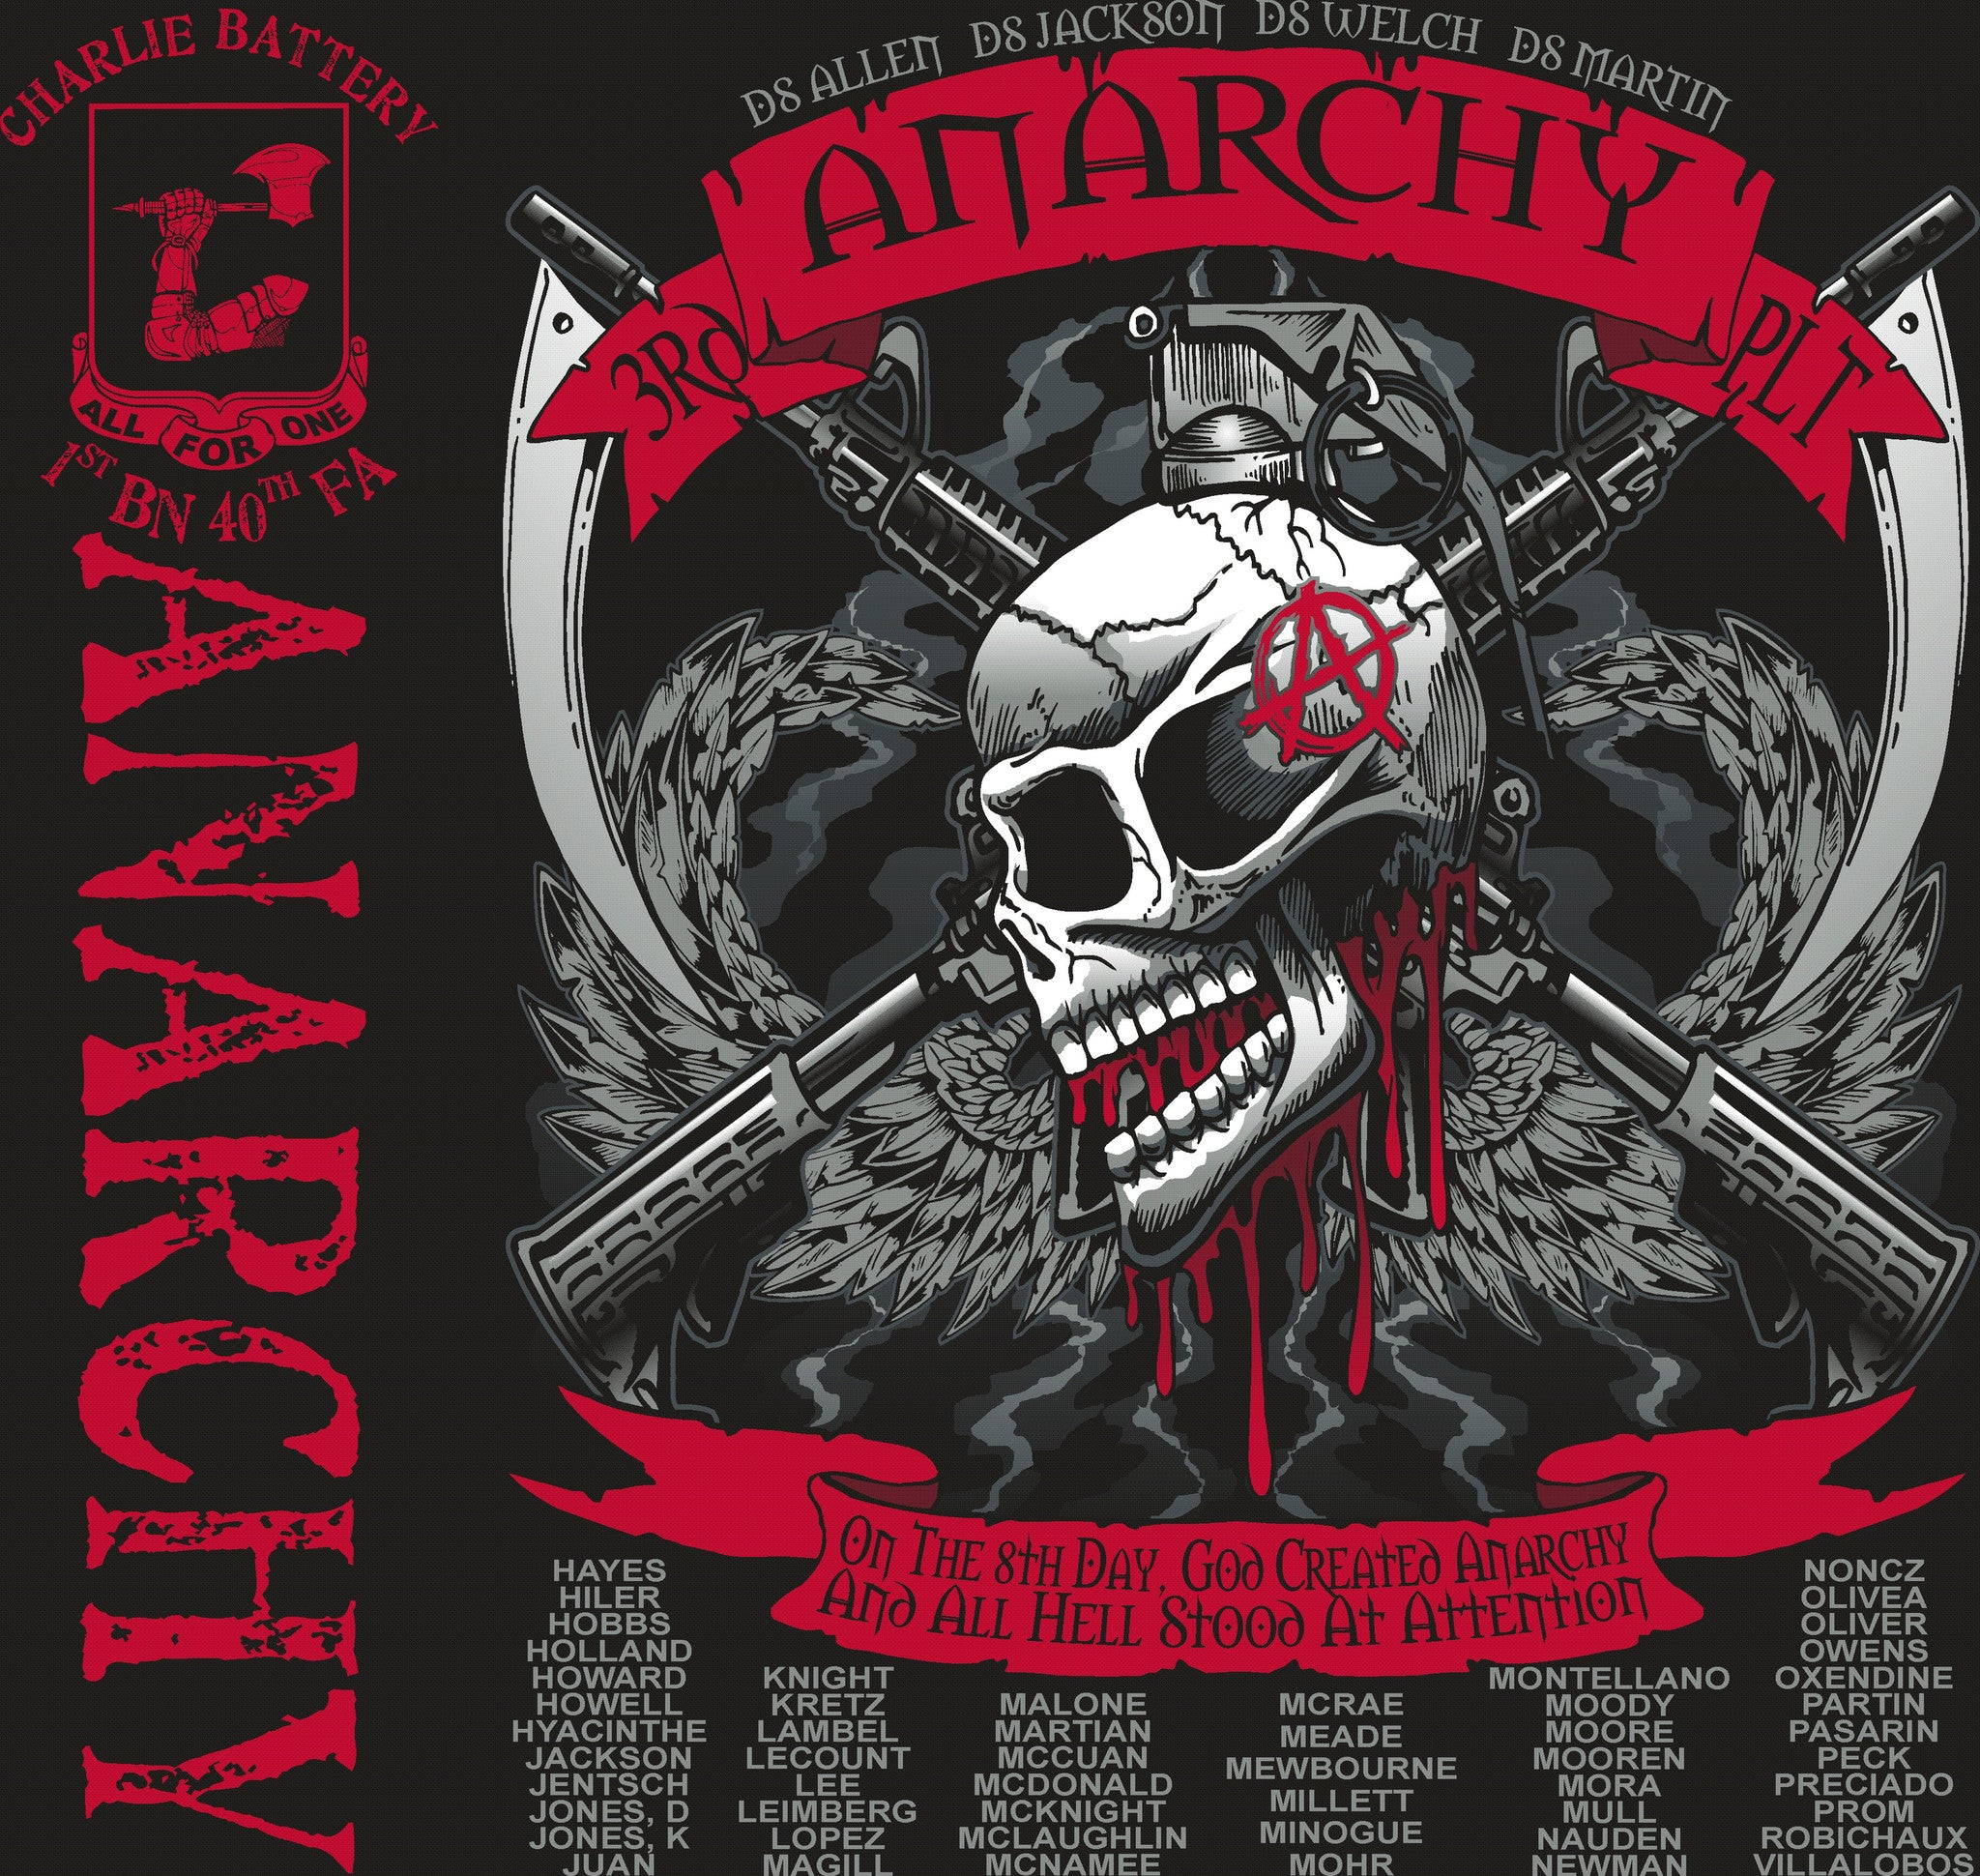 Platoon Shirts (digital) CHARLIE 1st 40th ANARCHY JULY 2015